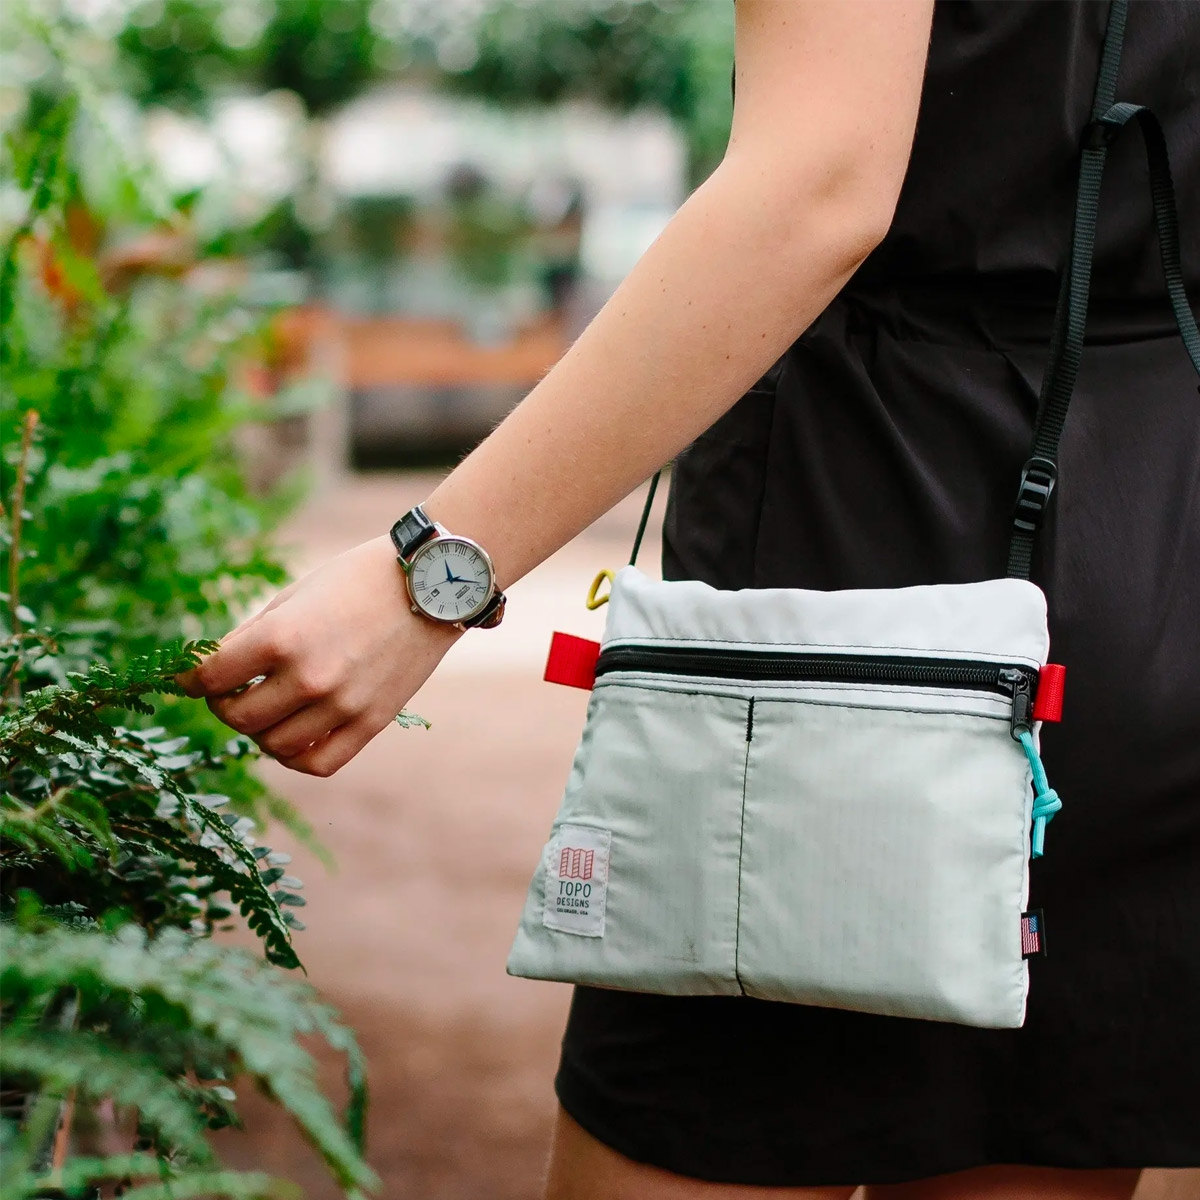 Topo Designs Accessory Shoulder Bag Black, small crossbody bag with external pockets for your phone or keys